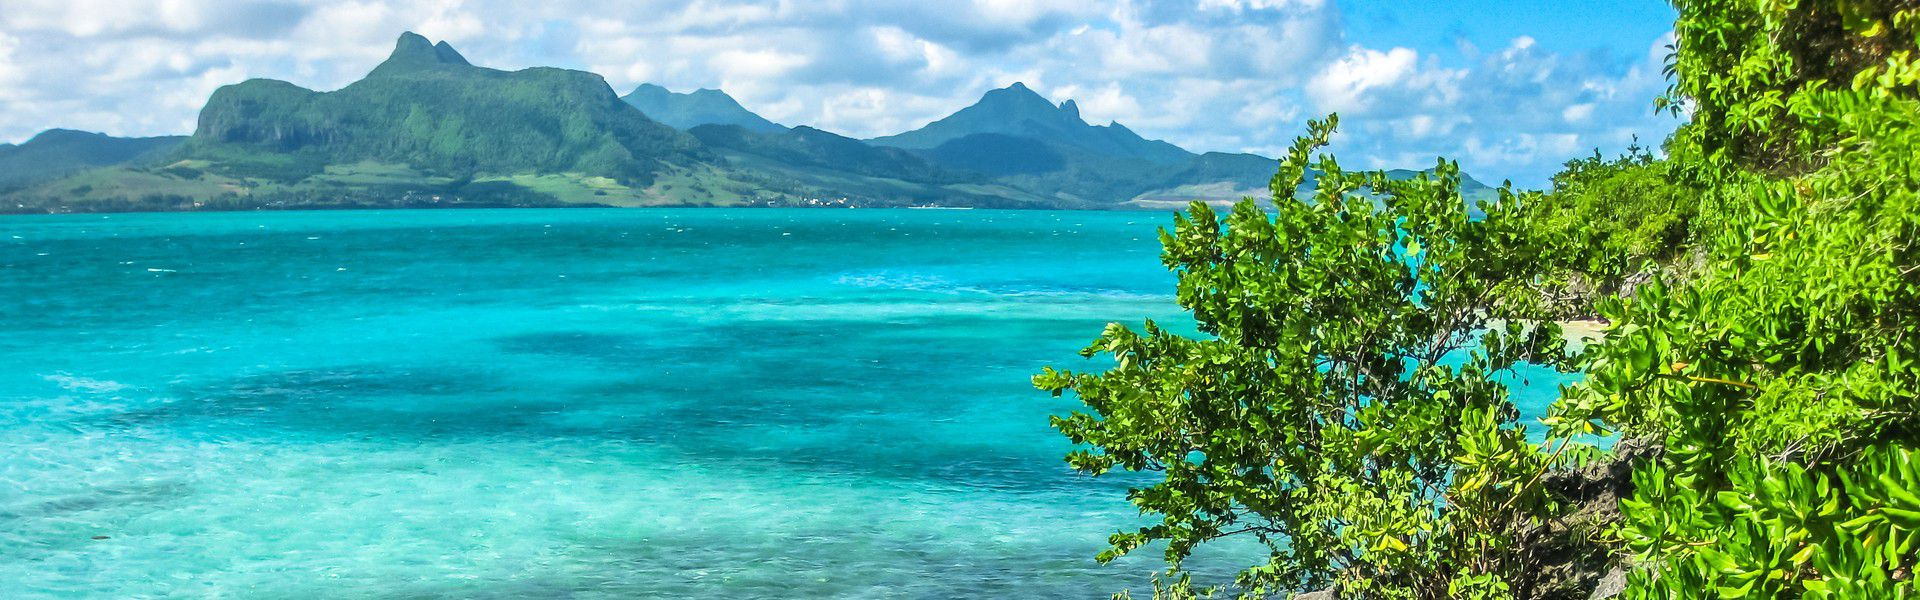 In the bay of Mahebourg, about 850 metres off the south-east coast of Mauritius, there is a unique islet, which has been declared as nature reserve in 1965 and is preserved by the Mauritius Wildlife Foundation; the Ile aux Aigrettes. Follow us to enjoy the portrayal of a marvelously unique and unforgettable escape.